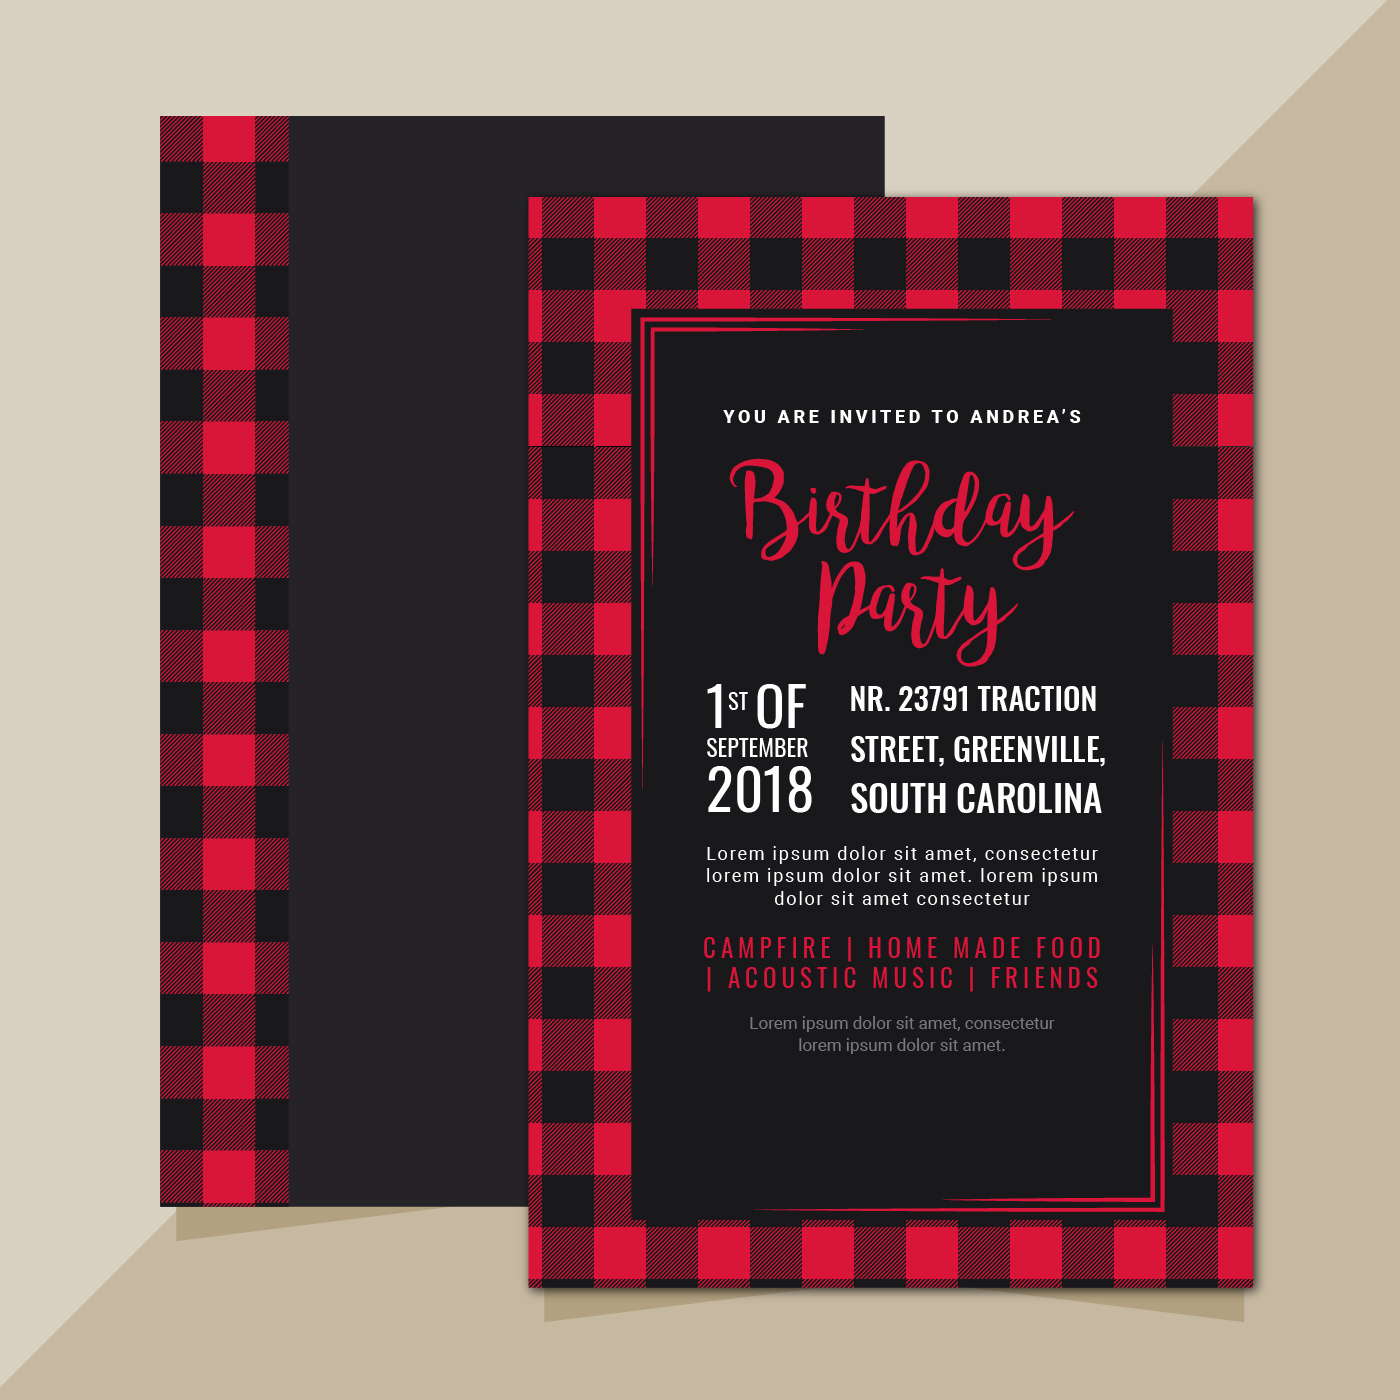 Vector Invitation With Buffalo Plaid Pattern Download Free Vector Art Stock Graphics Amp Images